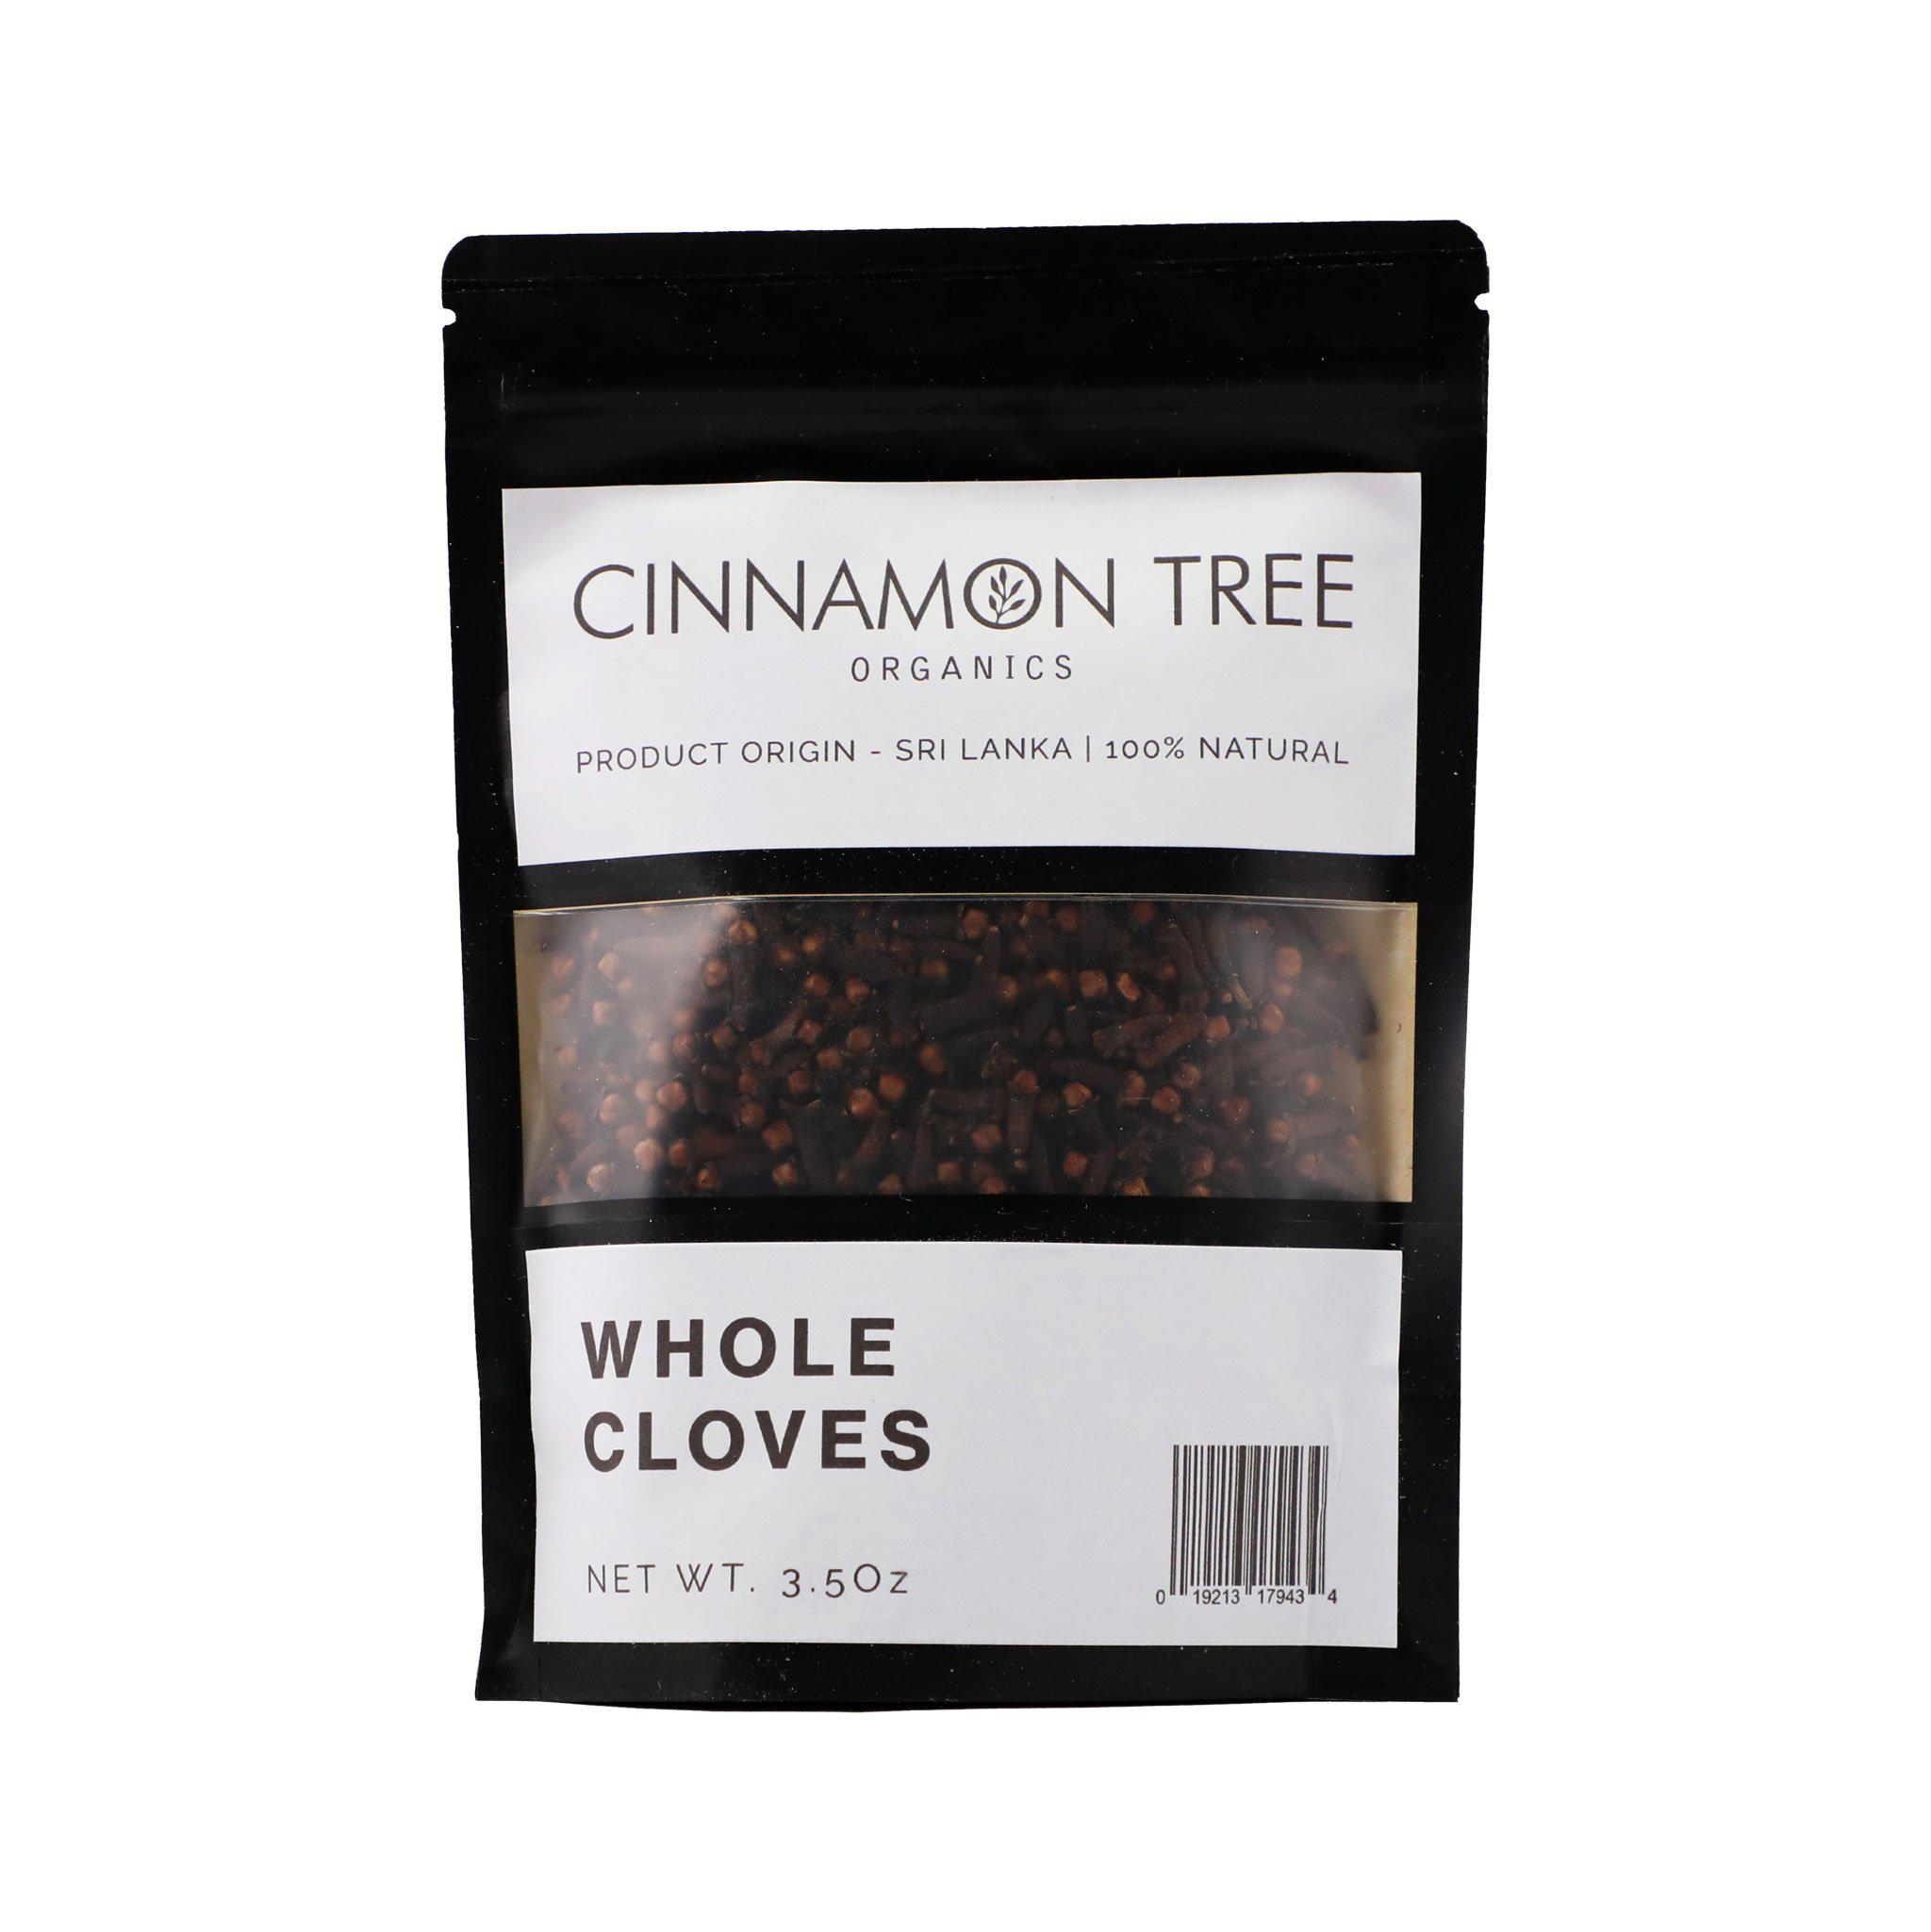 Cinnamon Tree Organics single origin whole cloves 3.5 Oz